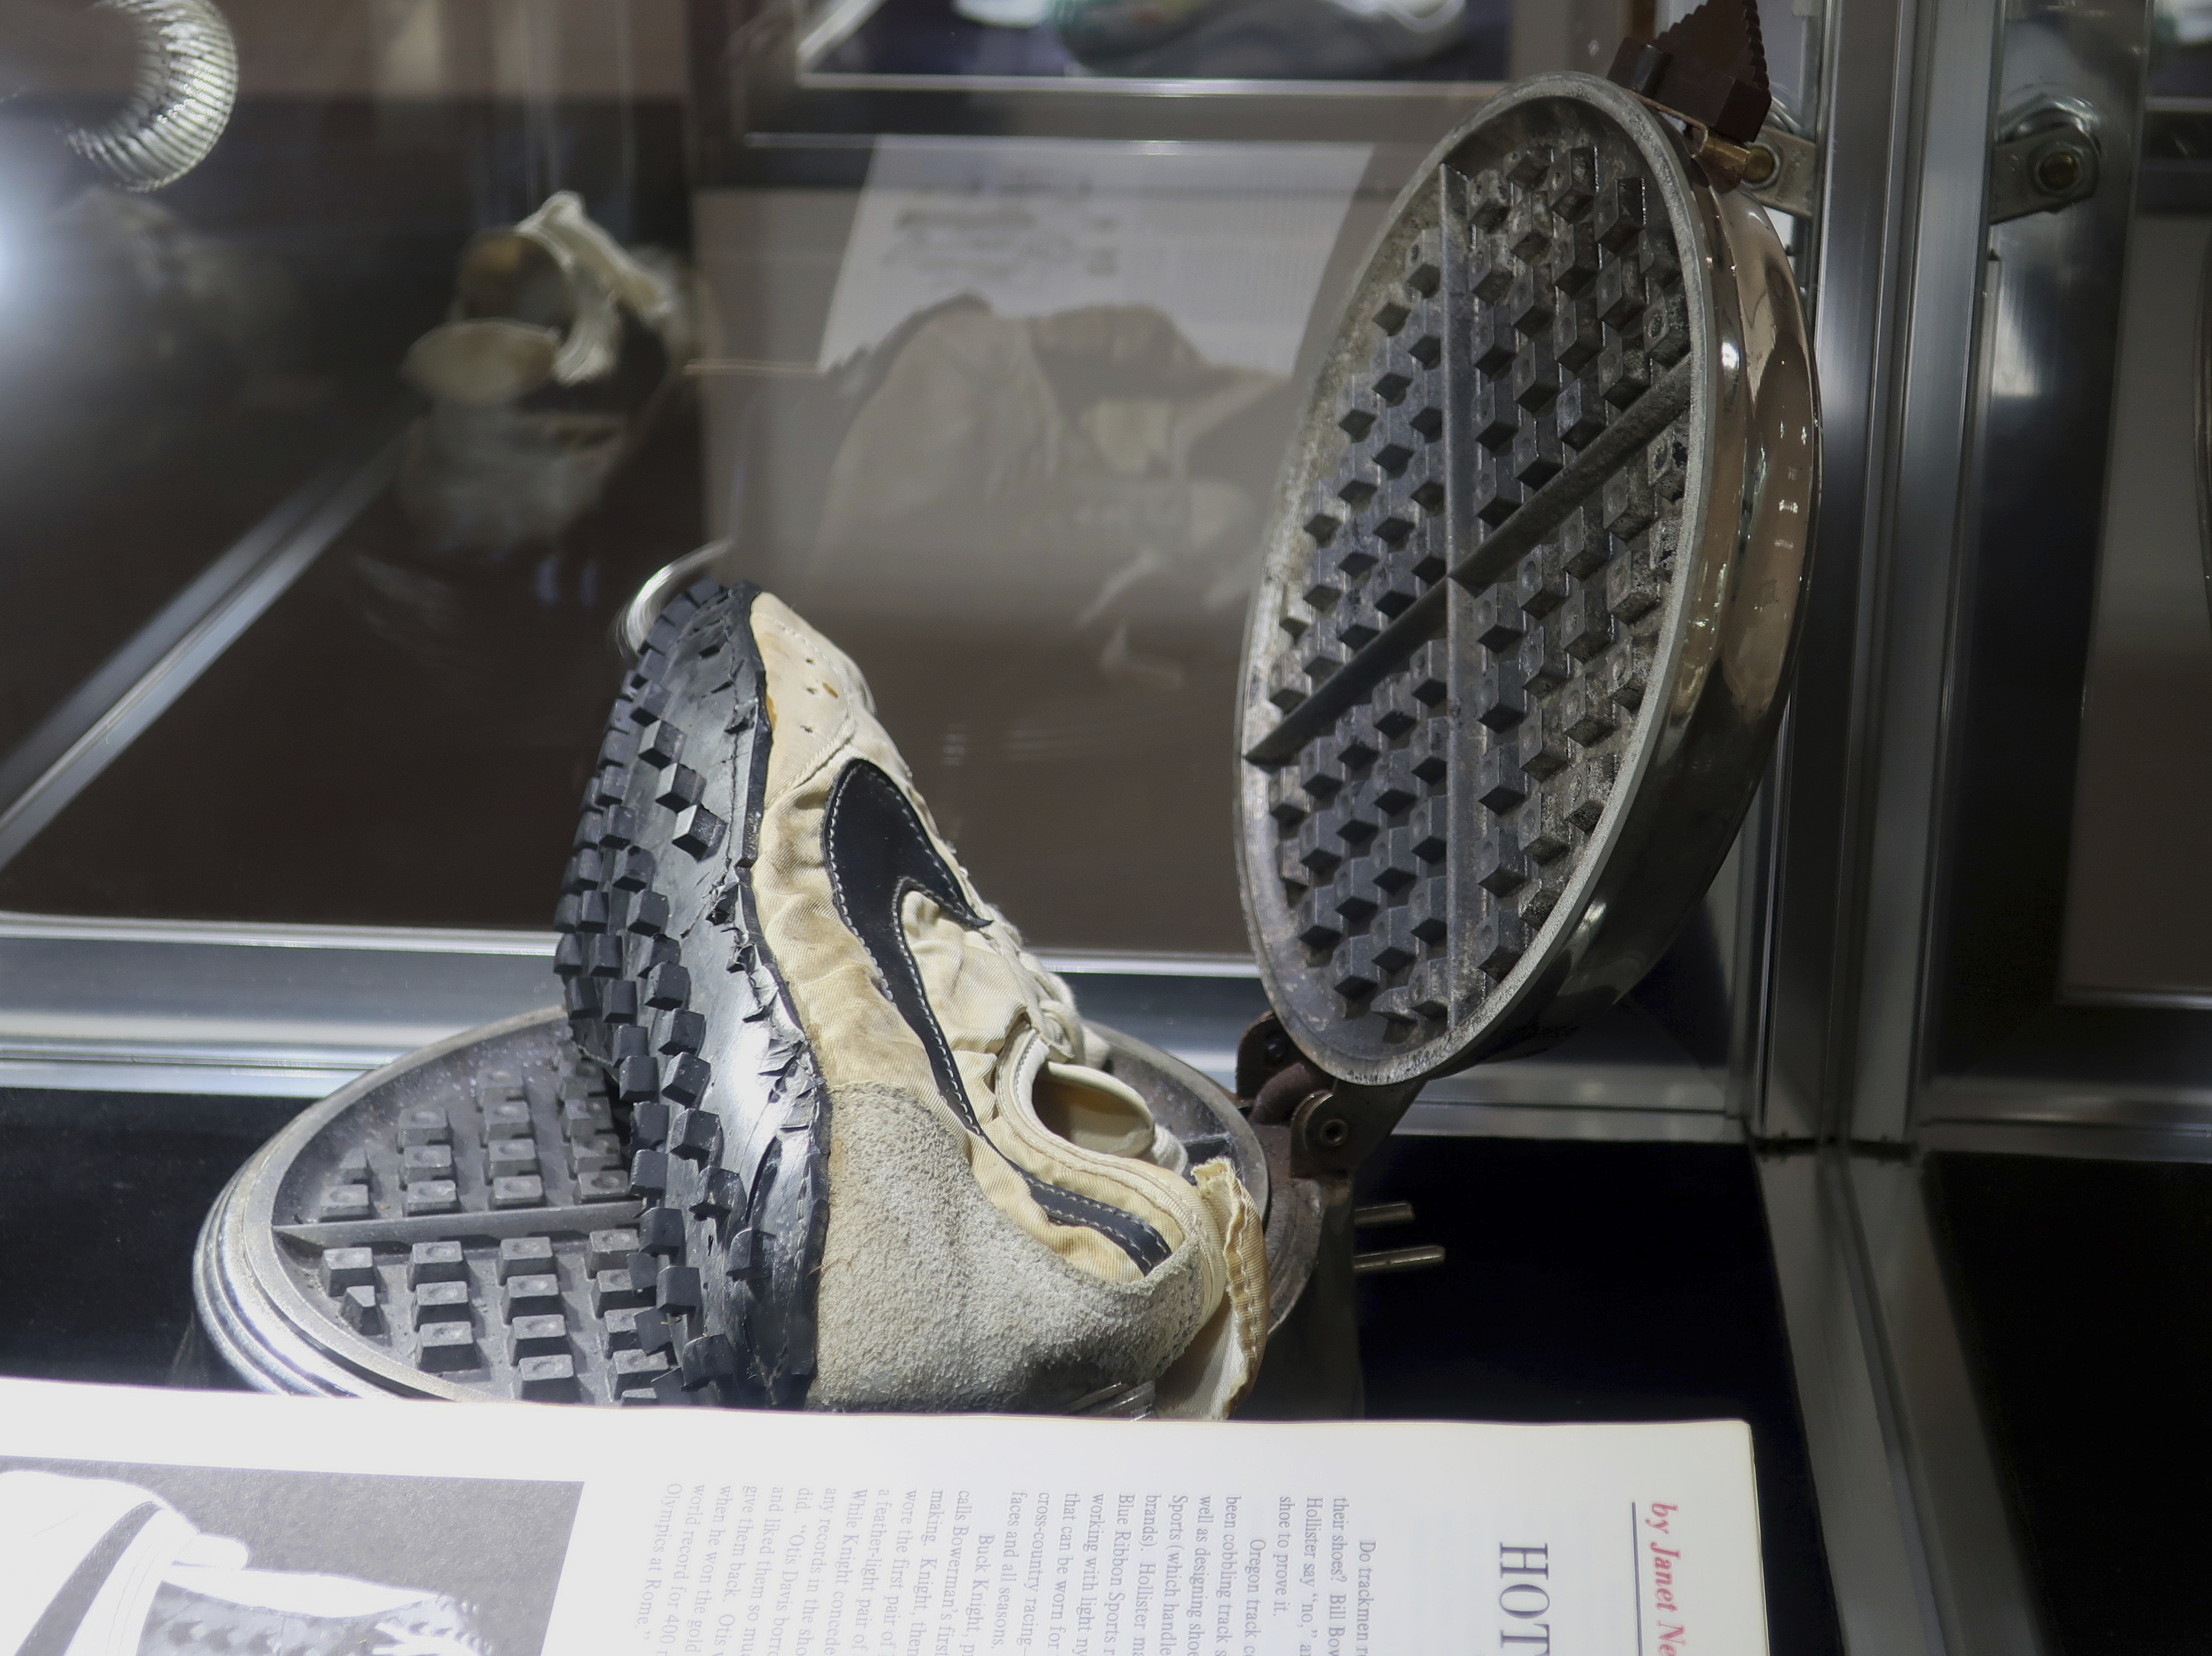 """Nike's """"moon shoes"""" were estimated to sell for $160,000 at auction, but ended up selling for $437,500. (AP Photo/Ted Shaffrey)"""